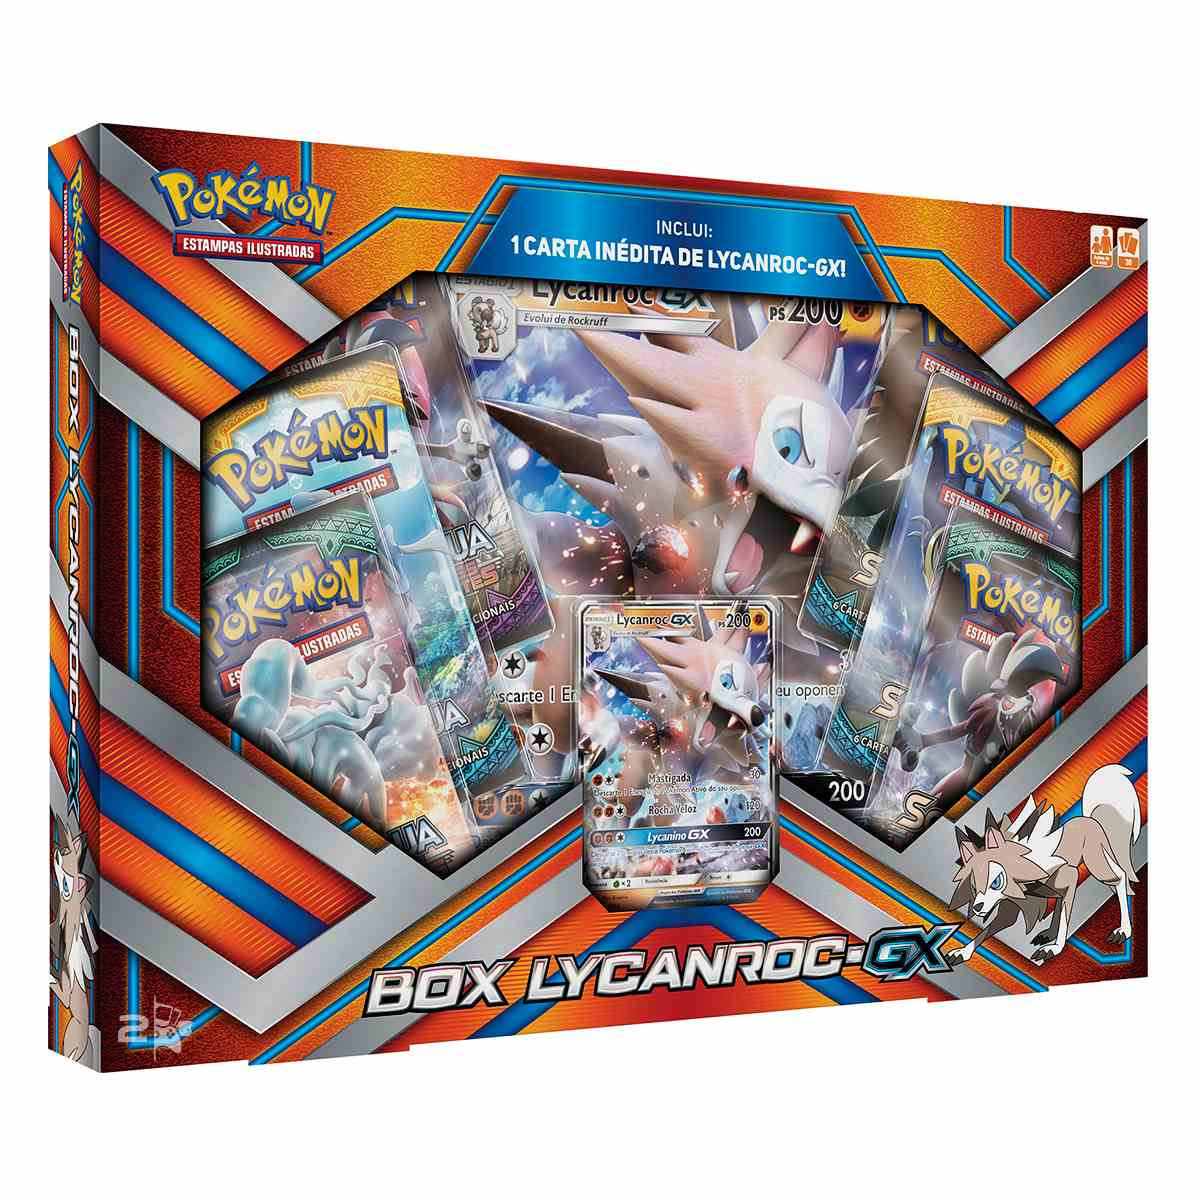 Pokemon Box Lycanroc Gx Extragrande